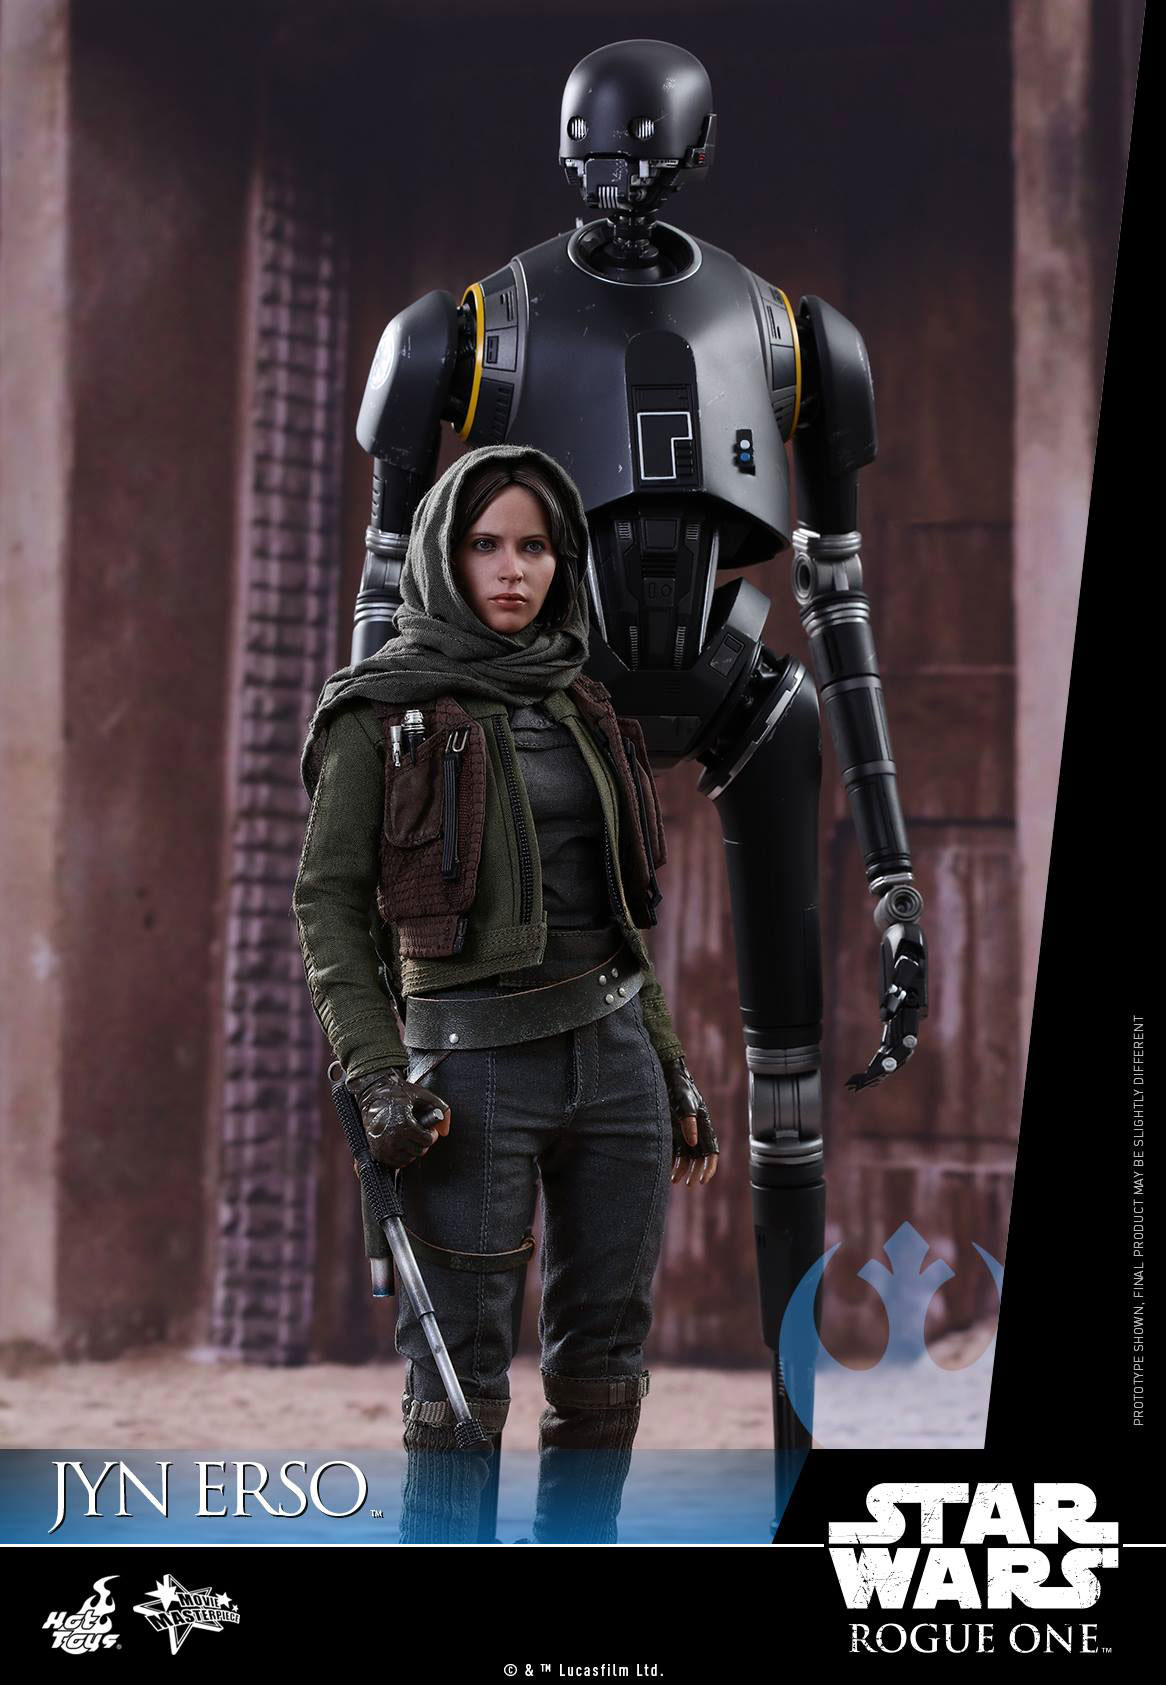 hot-toys-star-wars-rogue-one-jyn-erso-figure-5